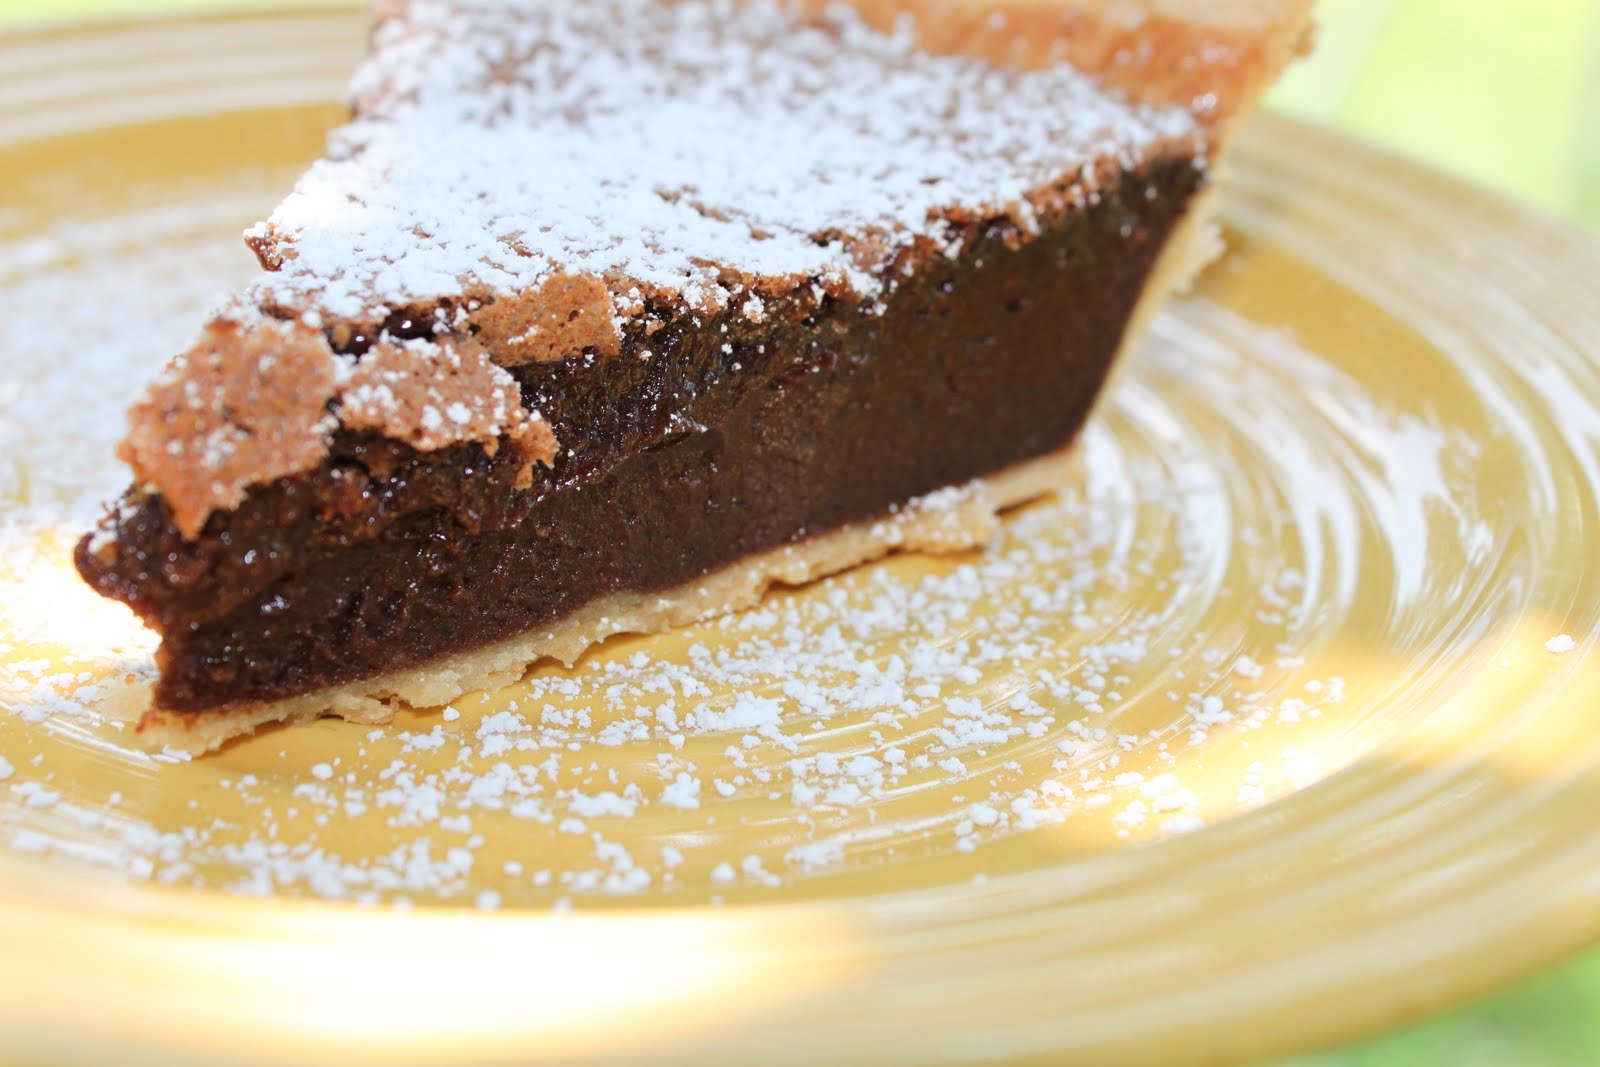 ... first experience with the Chocolate Chess Pie but it won't be my last